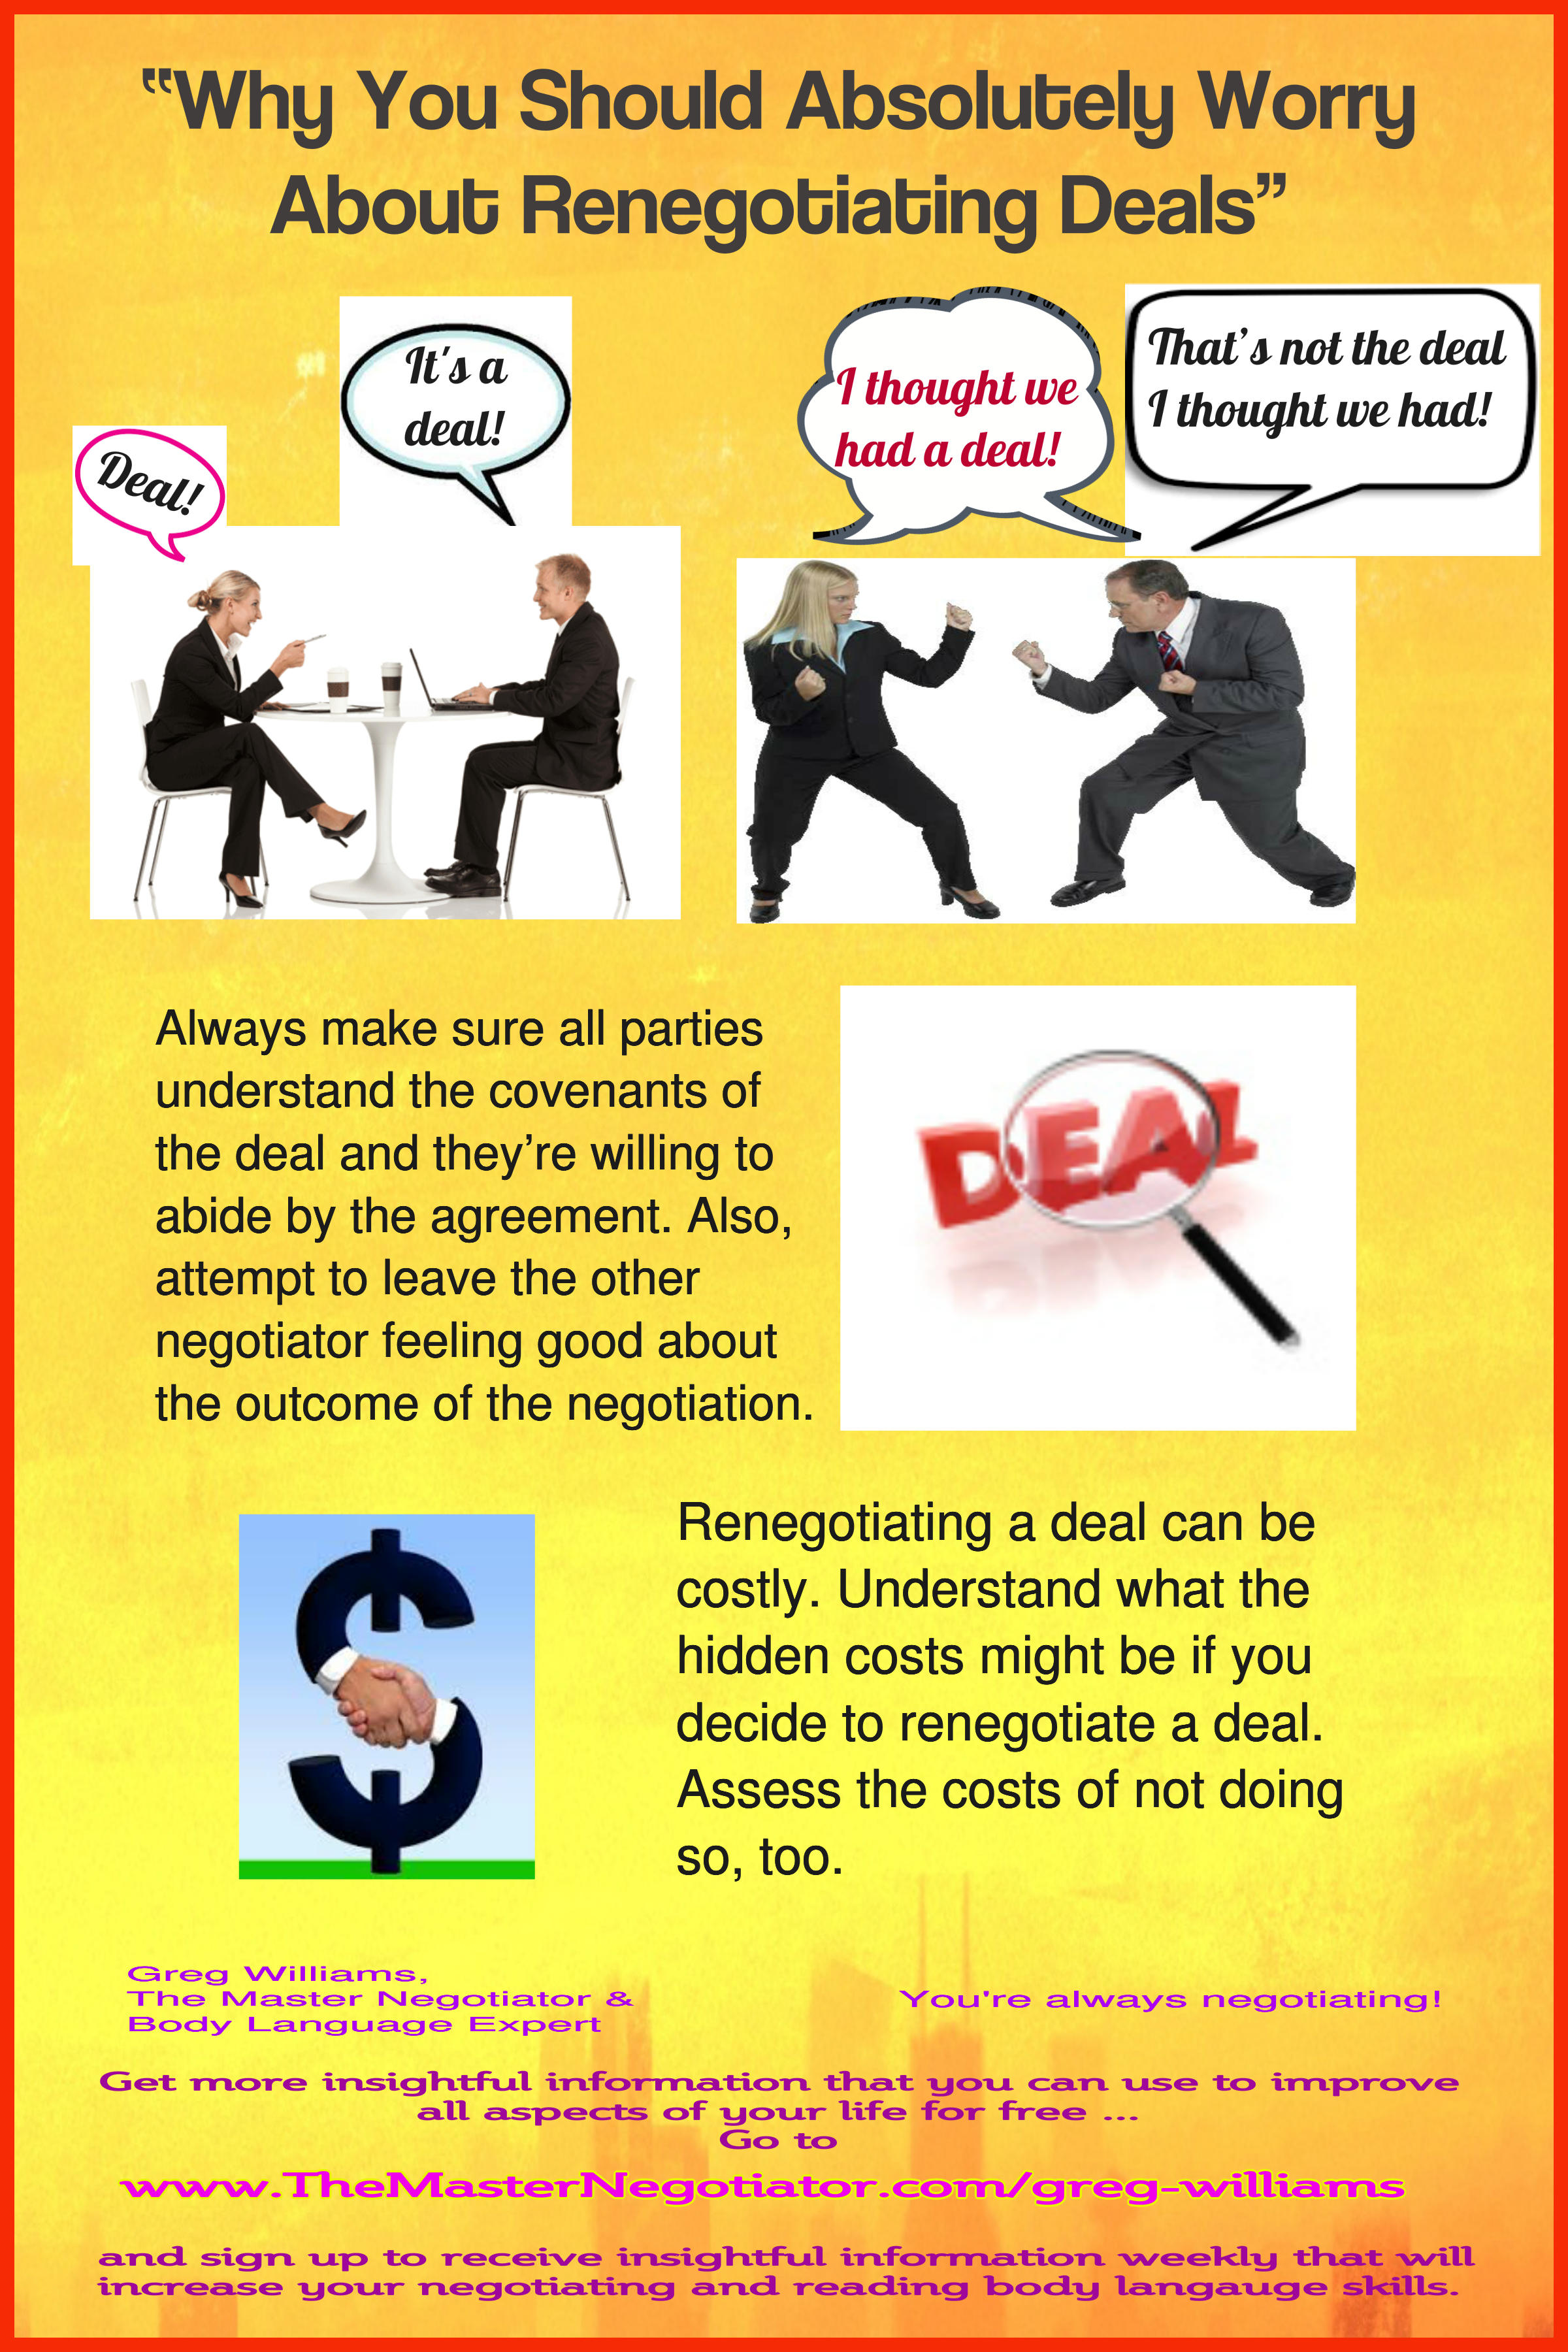 Why You Should Absolutely Worry About Renegotiating Deals